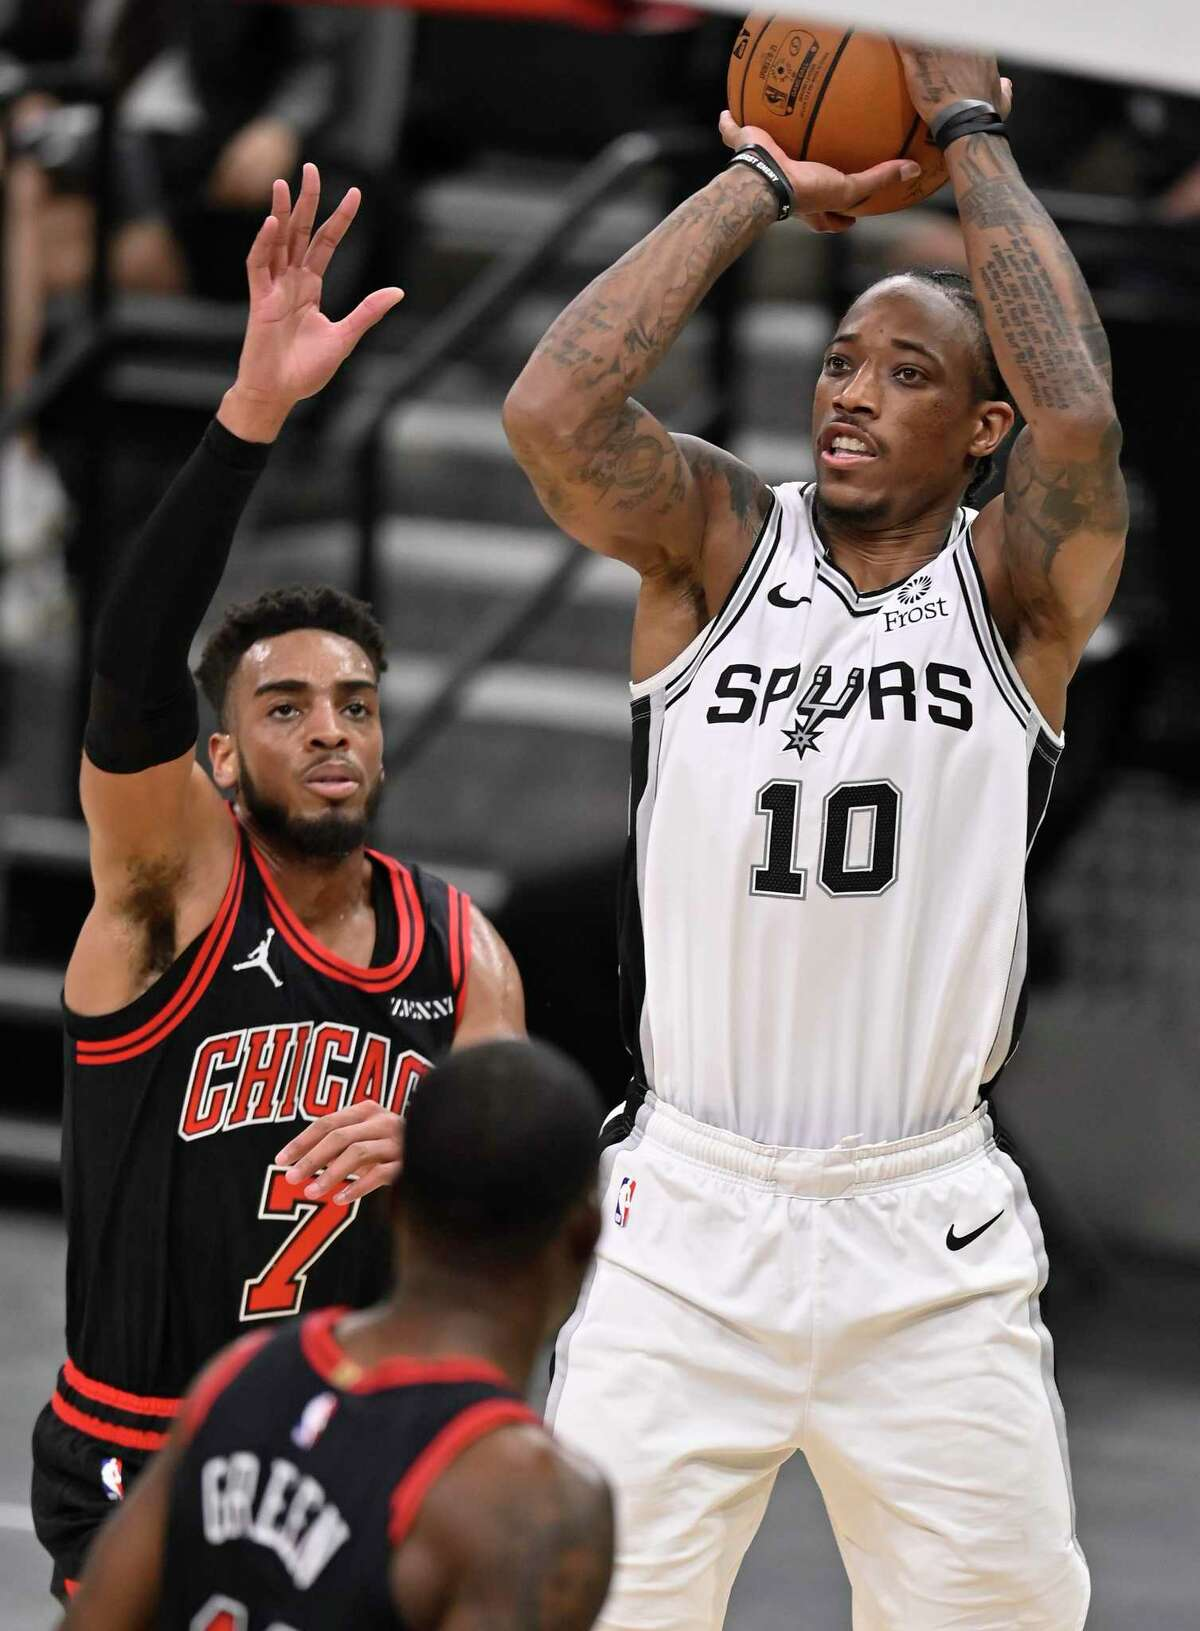 San Antonio Spurs' DeMar DeRozan (10) shoots as he is defended by Chicago Bulls' Troy Brown, Jr. during the second half of an NBA basketball game on Saturday, March 27, 2021, in San Antonio. (AP Photo/Darren Abate)